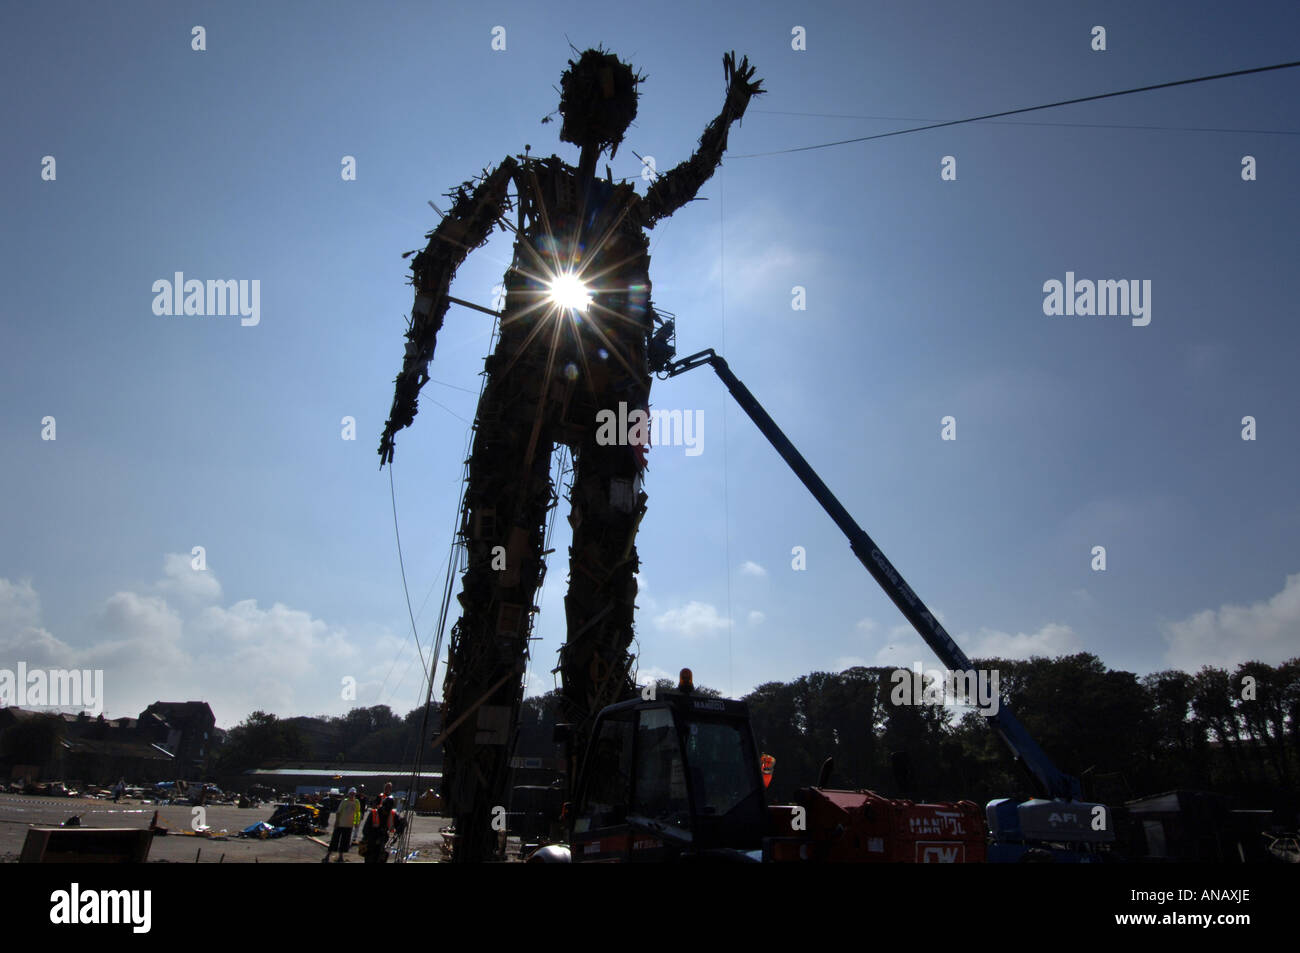 The Wasteman, an environmentally friendly 75ft high giant sculpture made entirely of rubbish by sculptor Antony Gormley - Stock Image